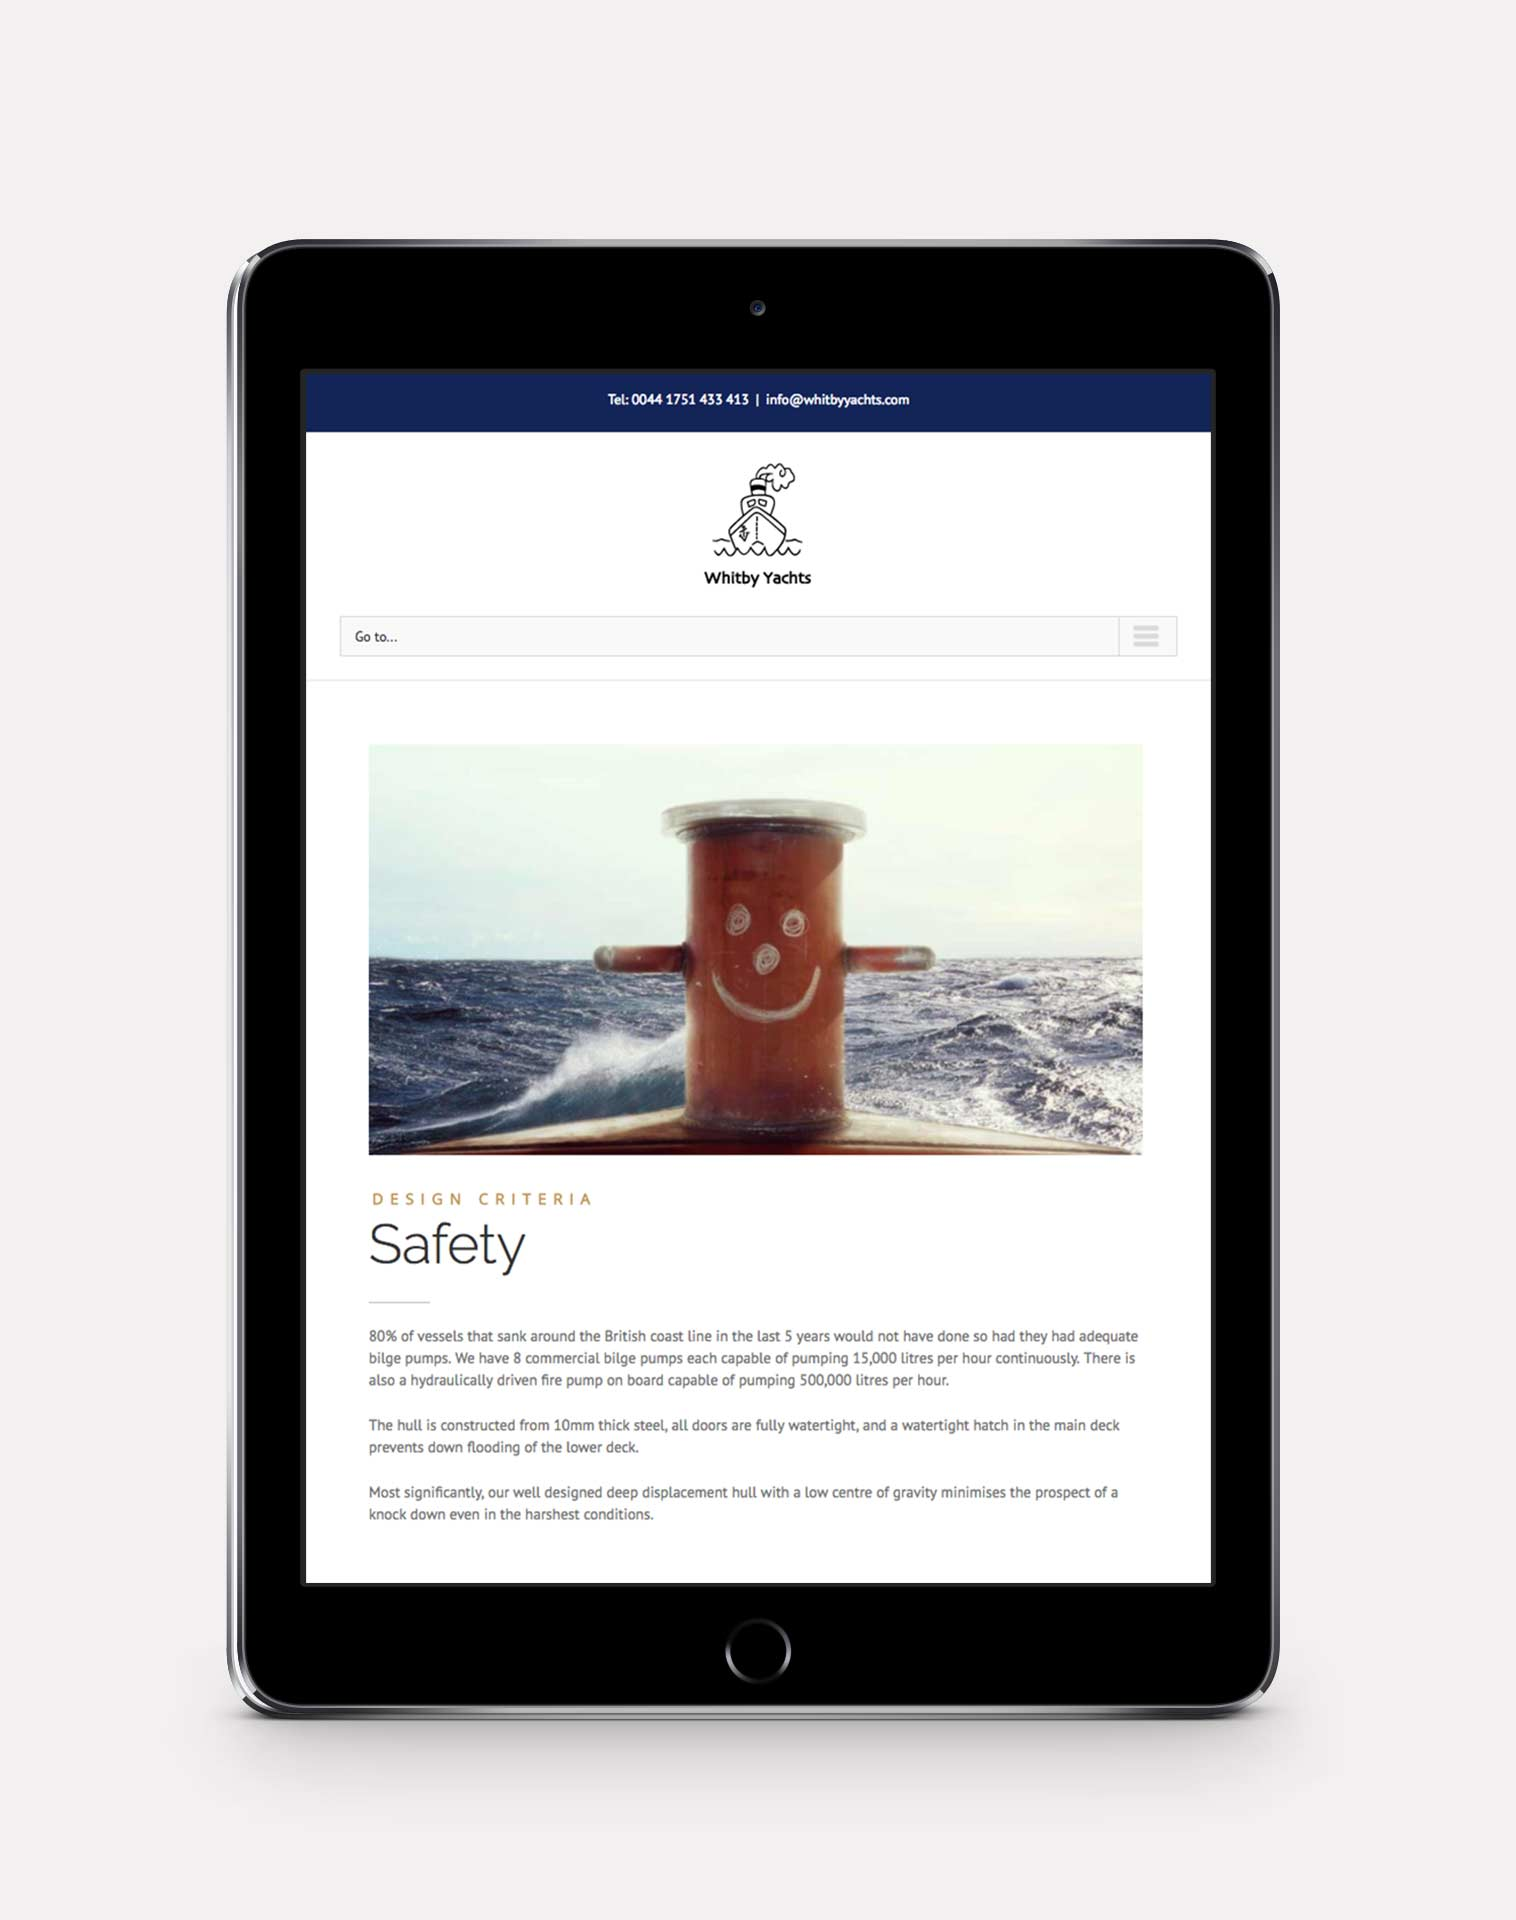 add_prj_whitbyyachts_ipad-air-black | Ace Digital Design